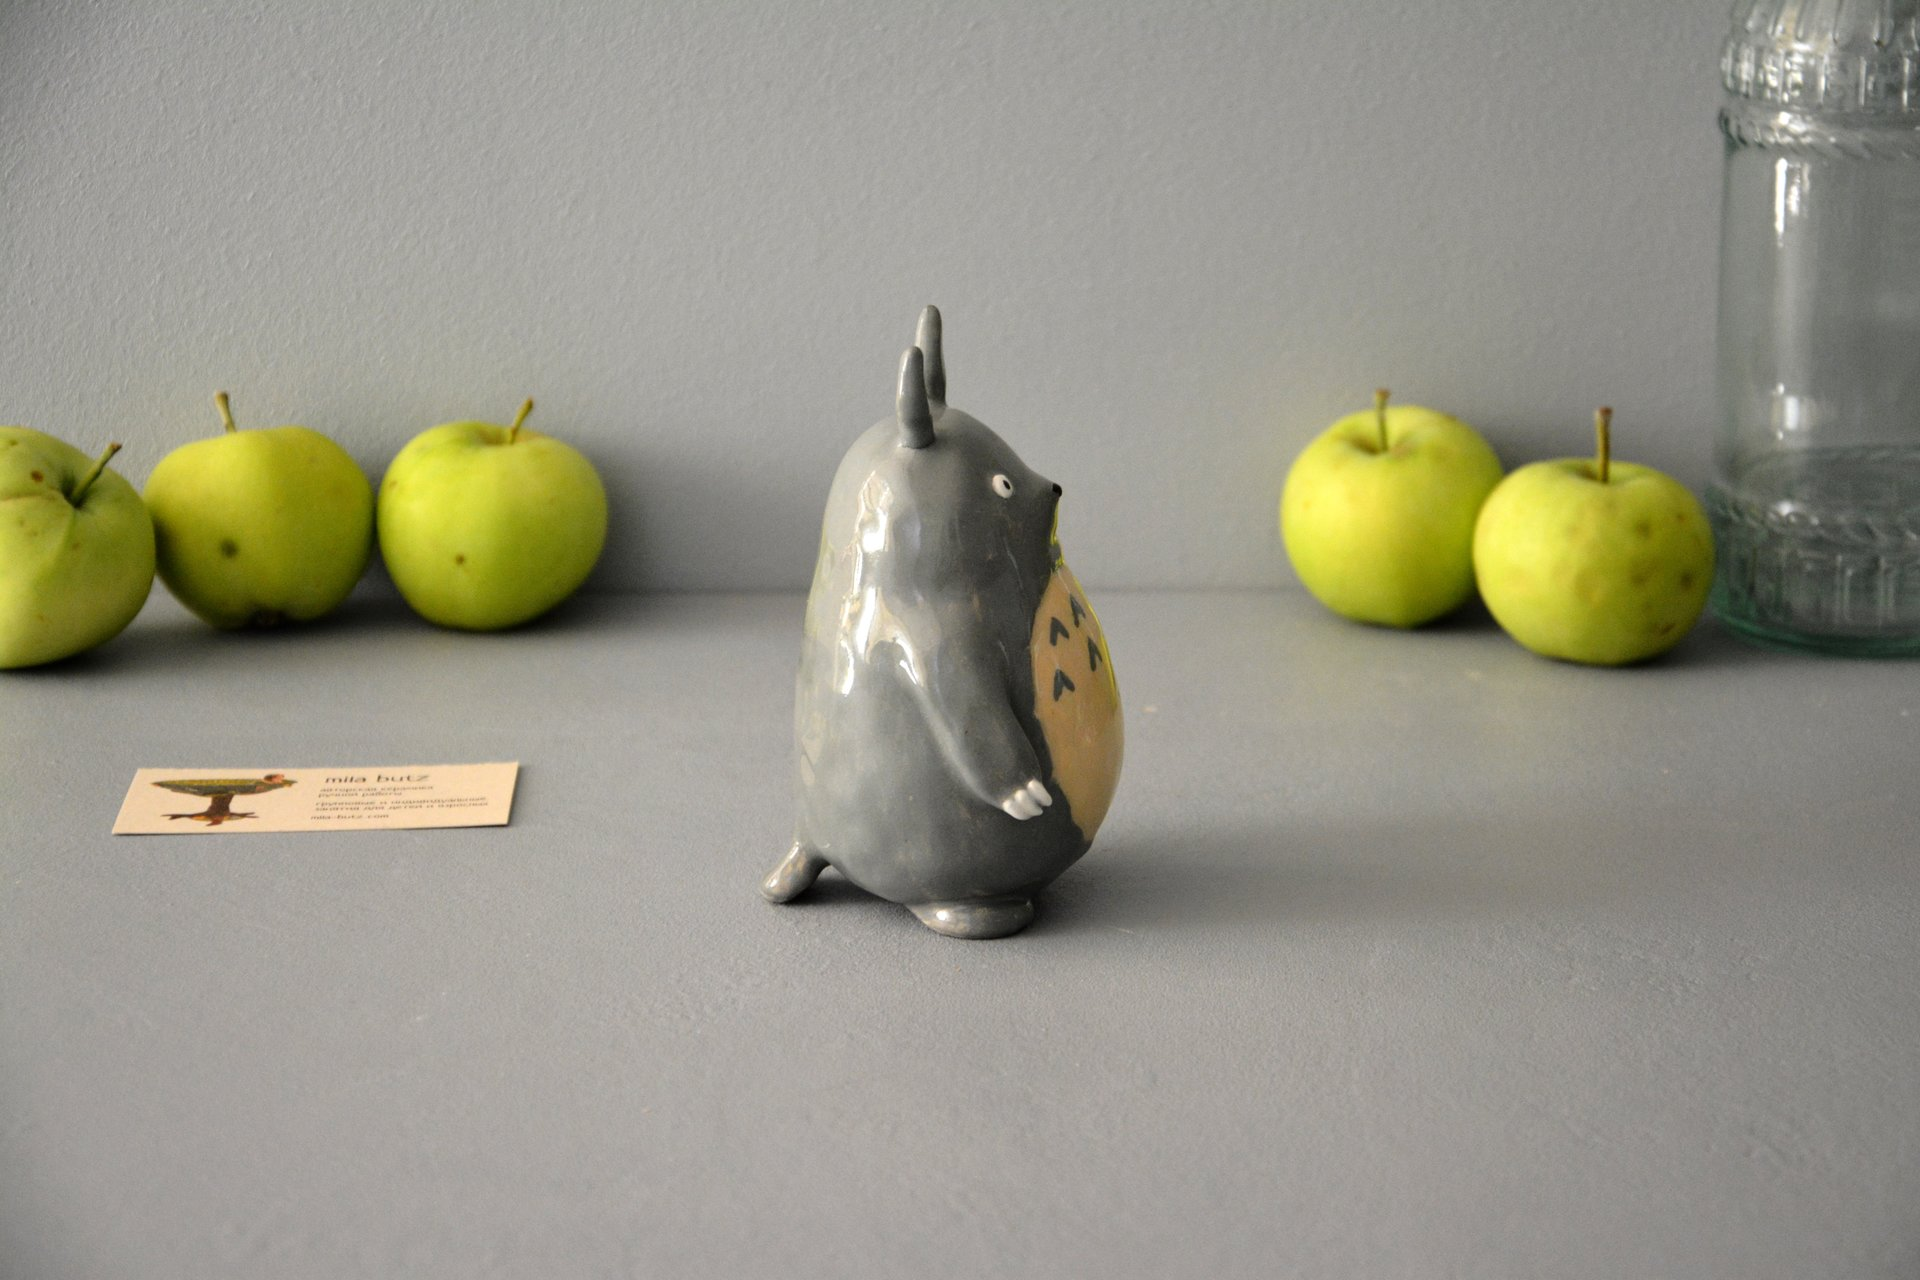 Ceramic figurine Totoro, height - 13 cm, photo 3 of 6.